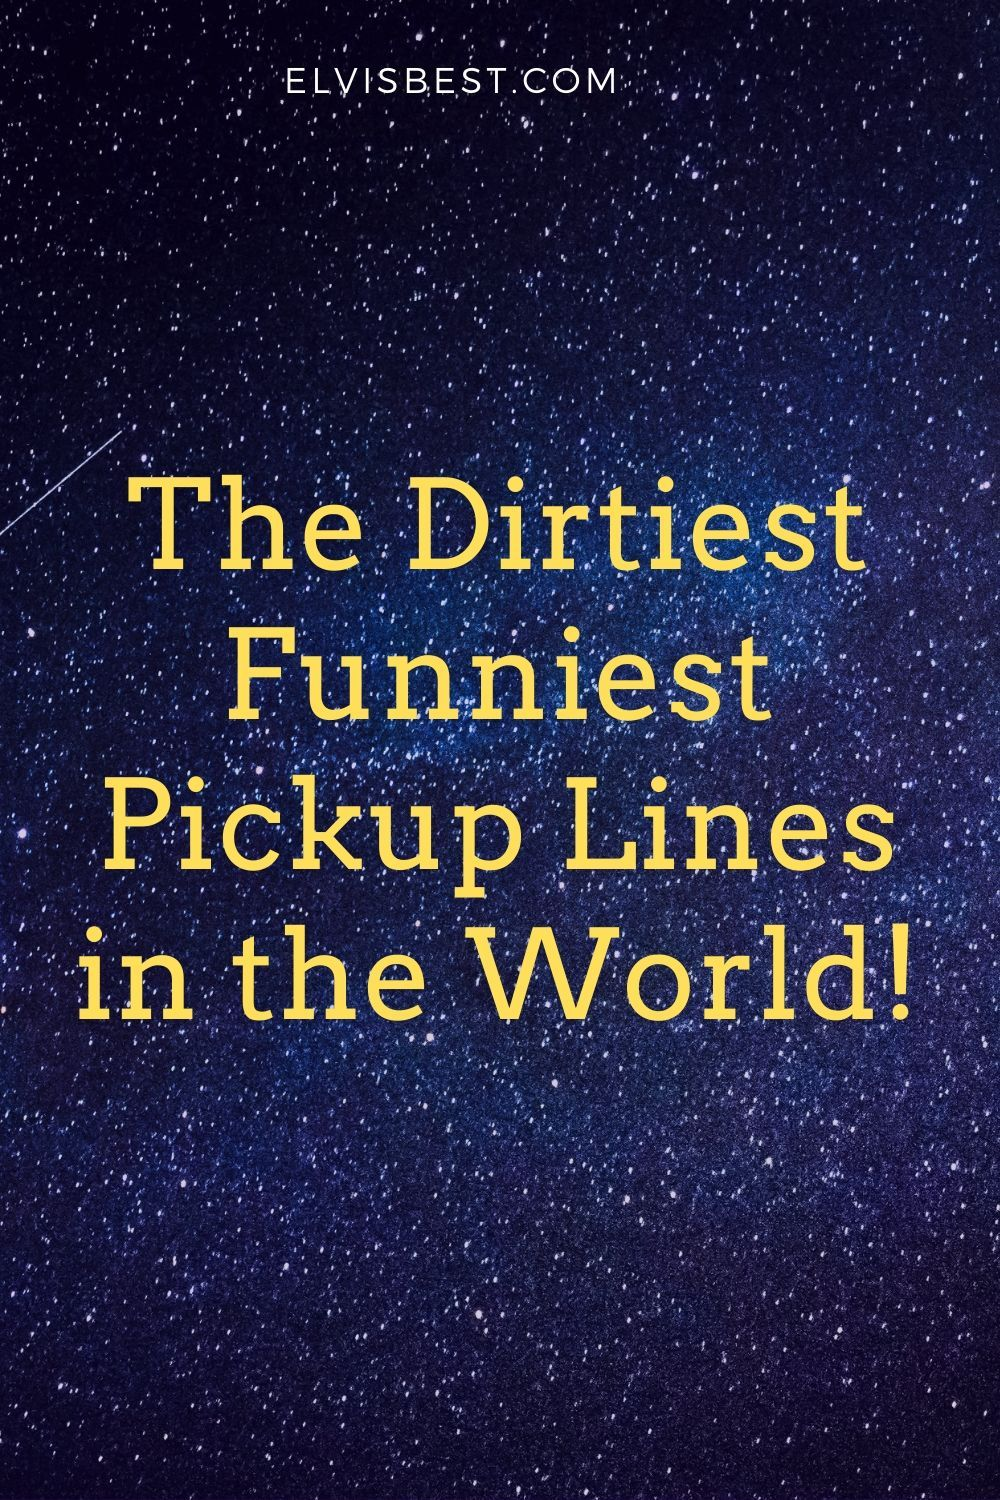 The Dirtiest Funniest Pick Up Lines in the World in 2020